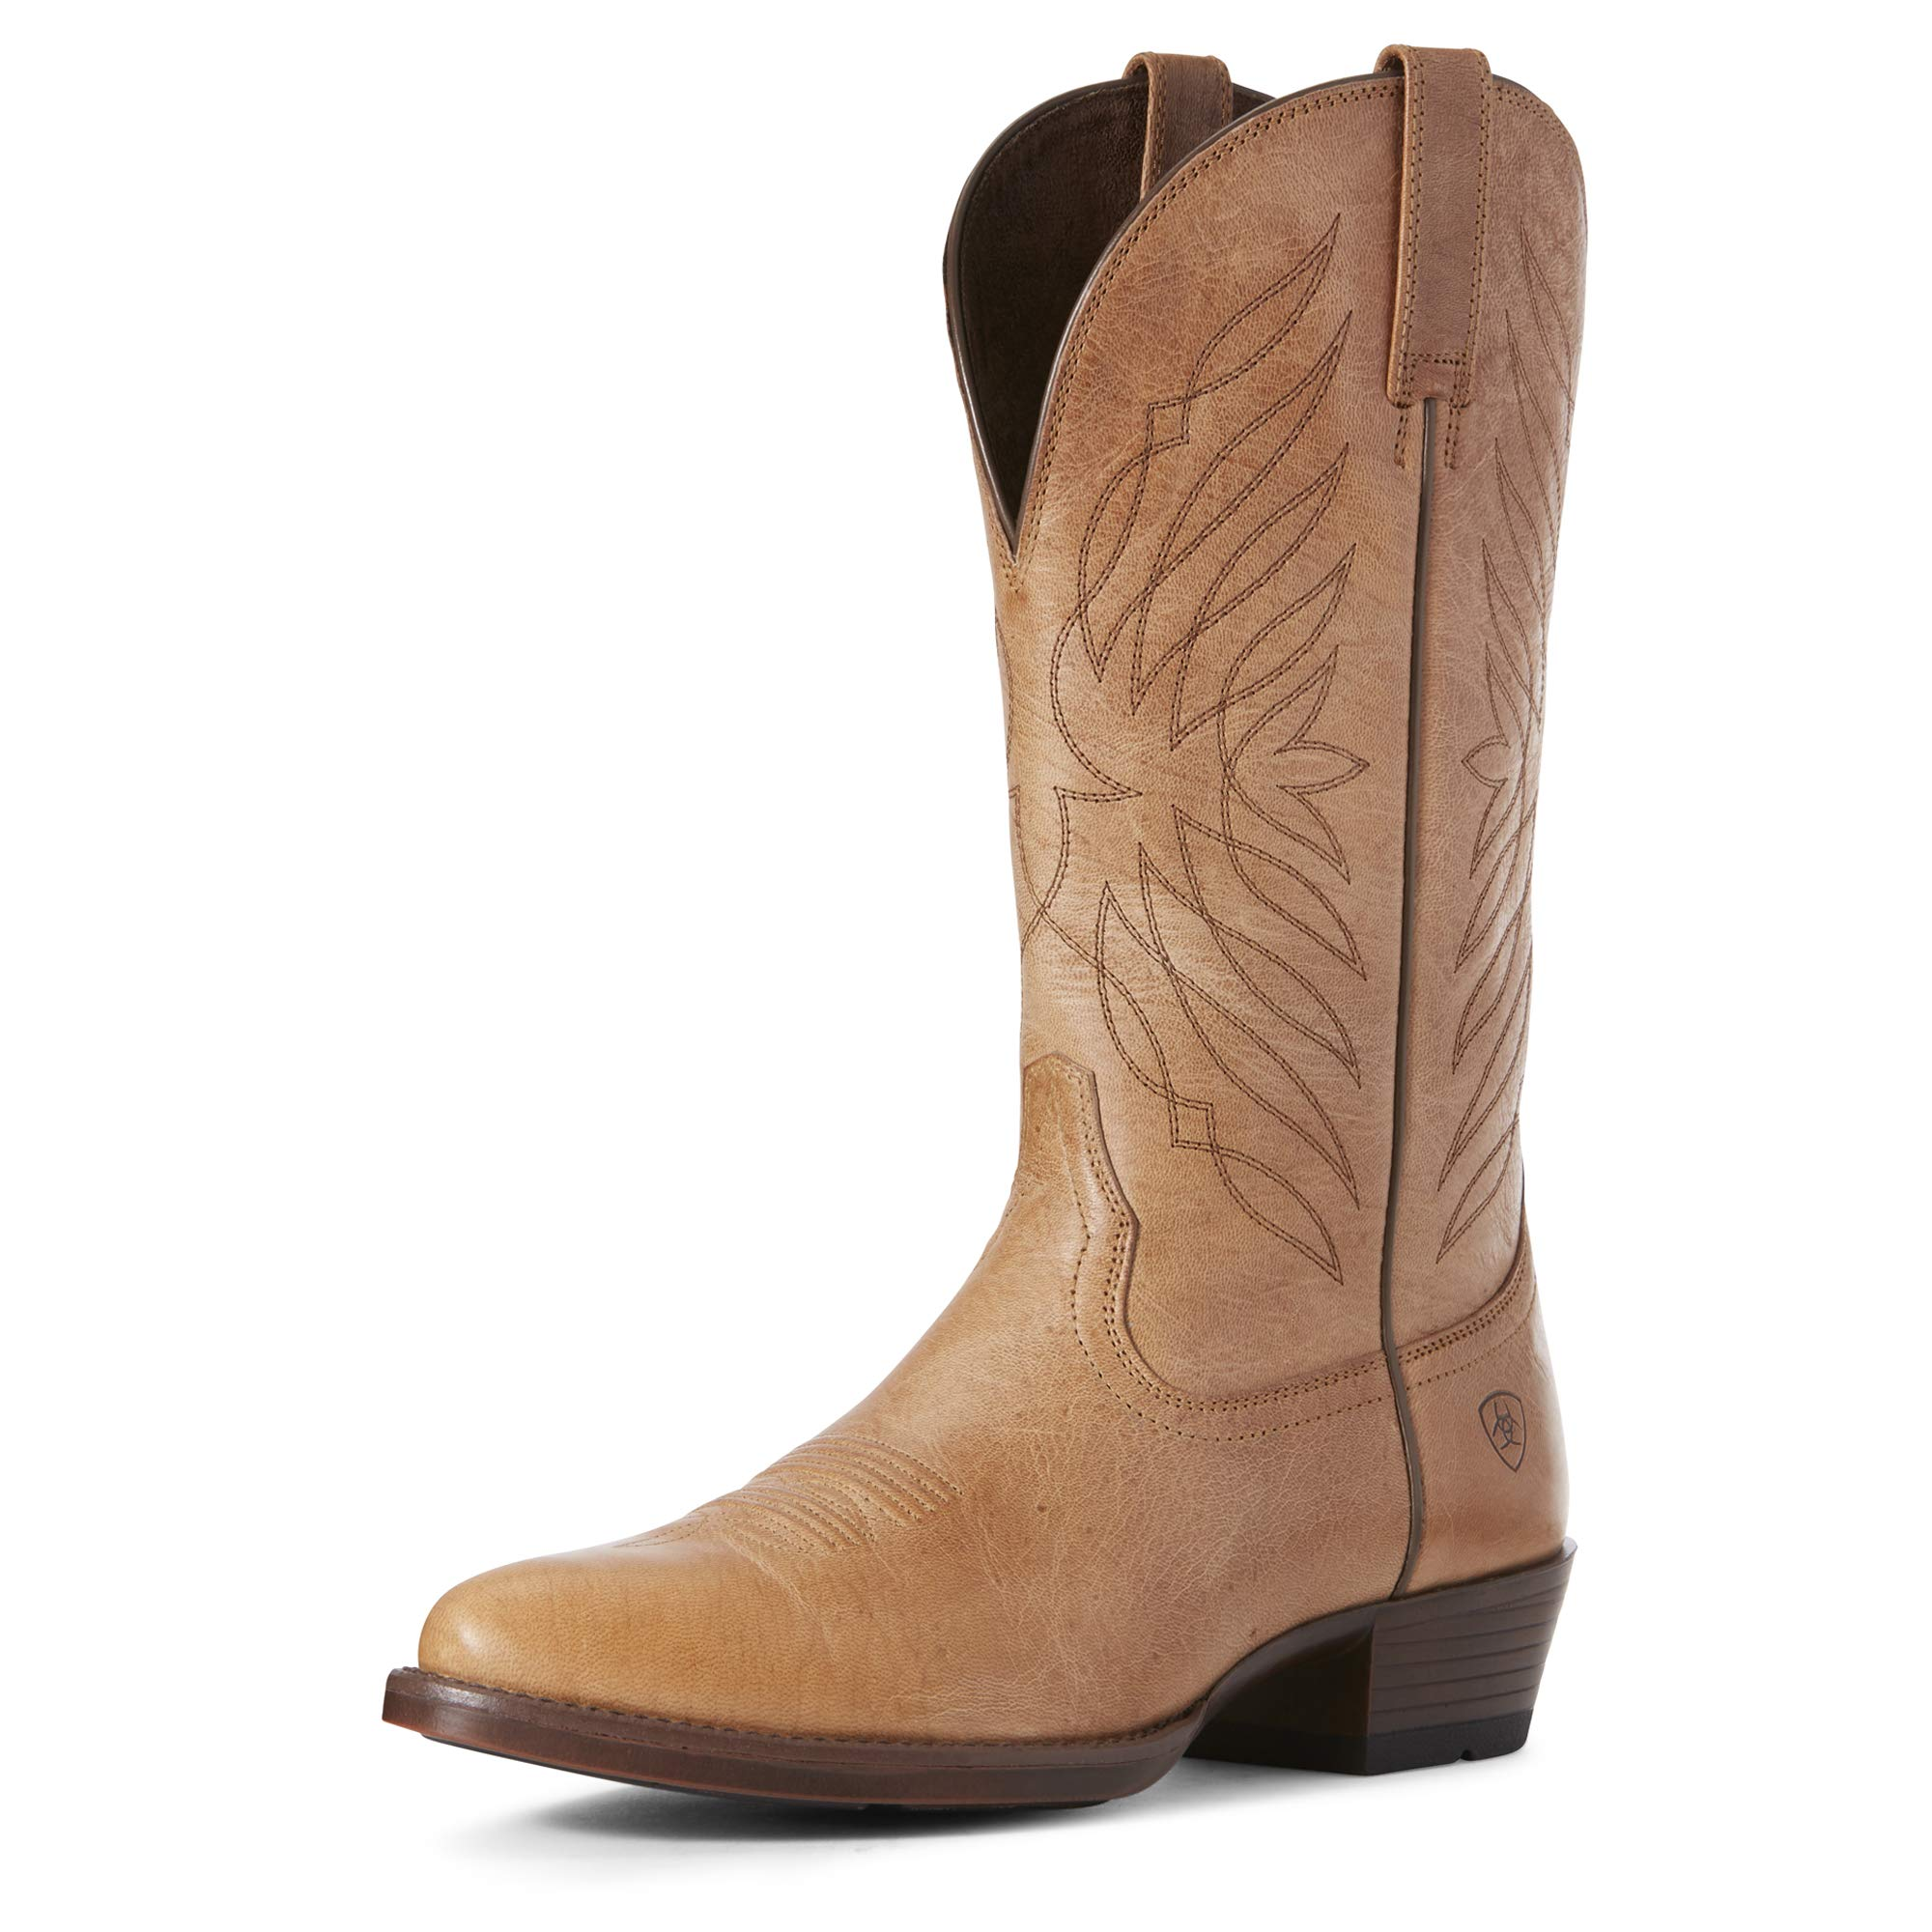 Ariat Men's Uptown Ultra Western Boot, Weathered Pebble, 11EE by ARIAT